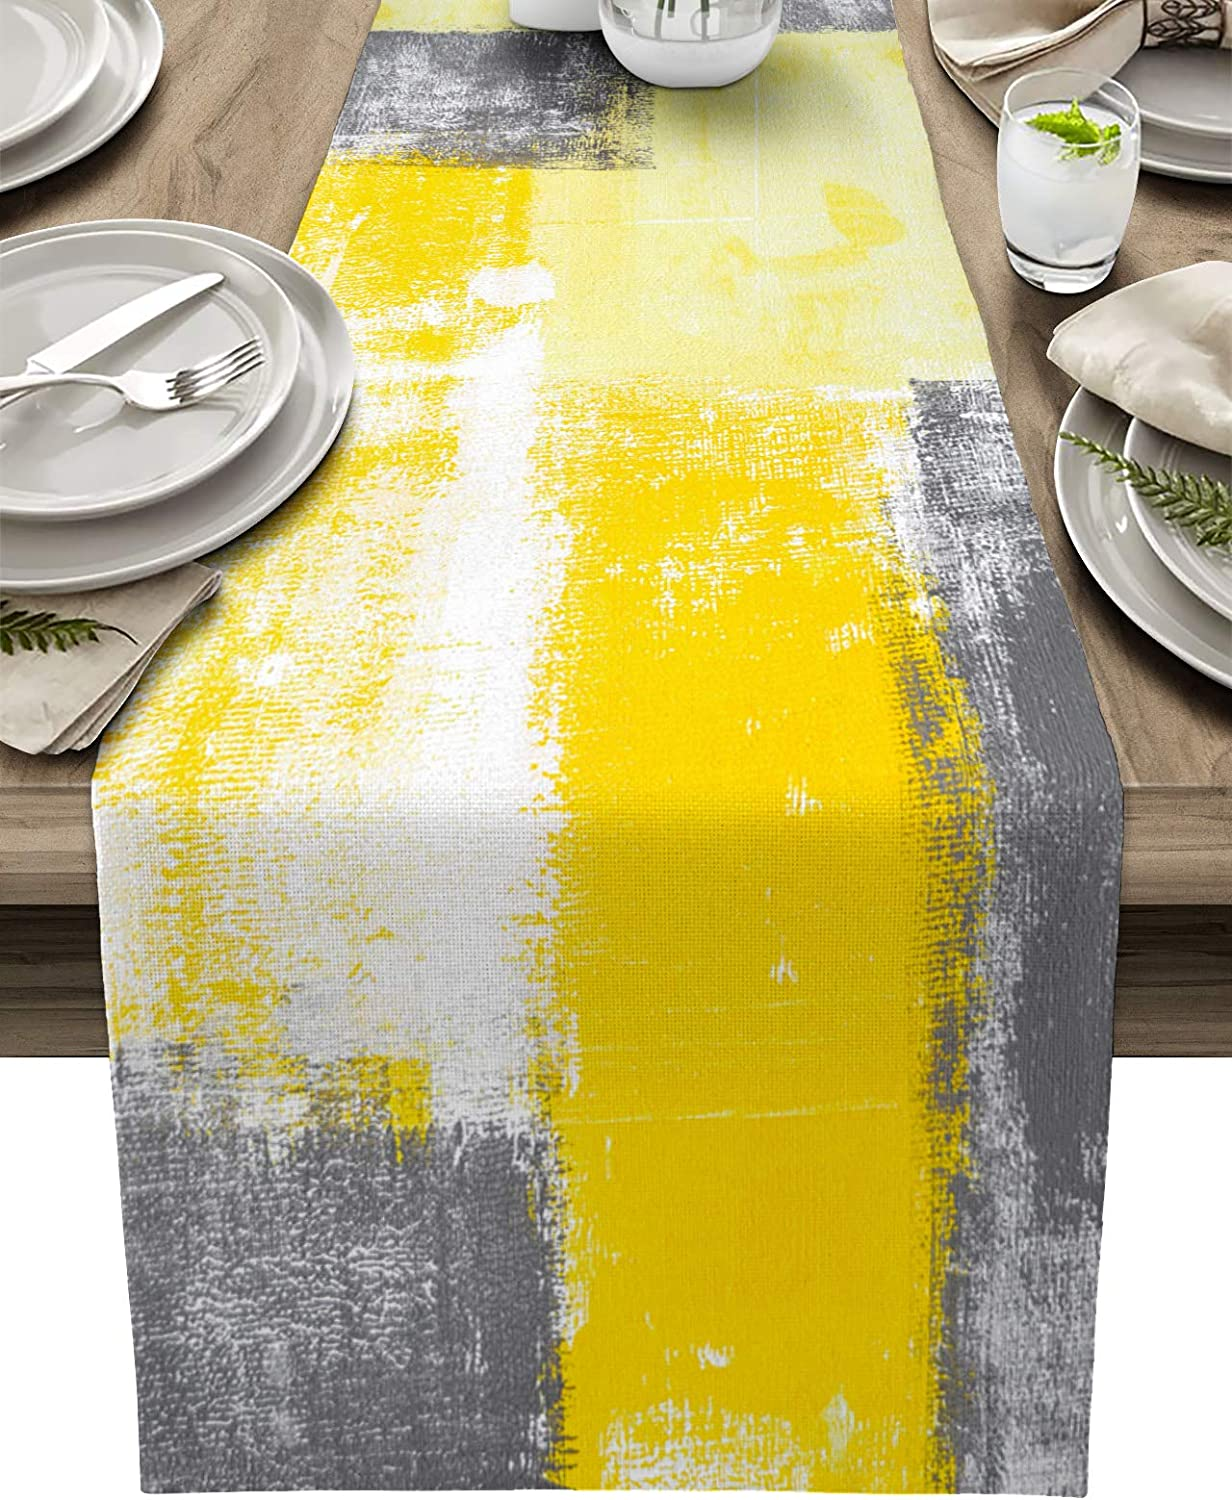 Table Runner Farmhouse Style Burlap Table Runner 13 x 90 Inches, Yellow Gray Modern Abstract Art Painting Graffiti Design Table Runners for Kitchen, Everyday Dining Wedding Party Holiday Home Decor